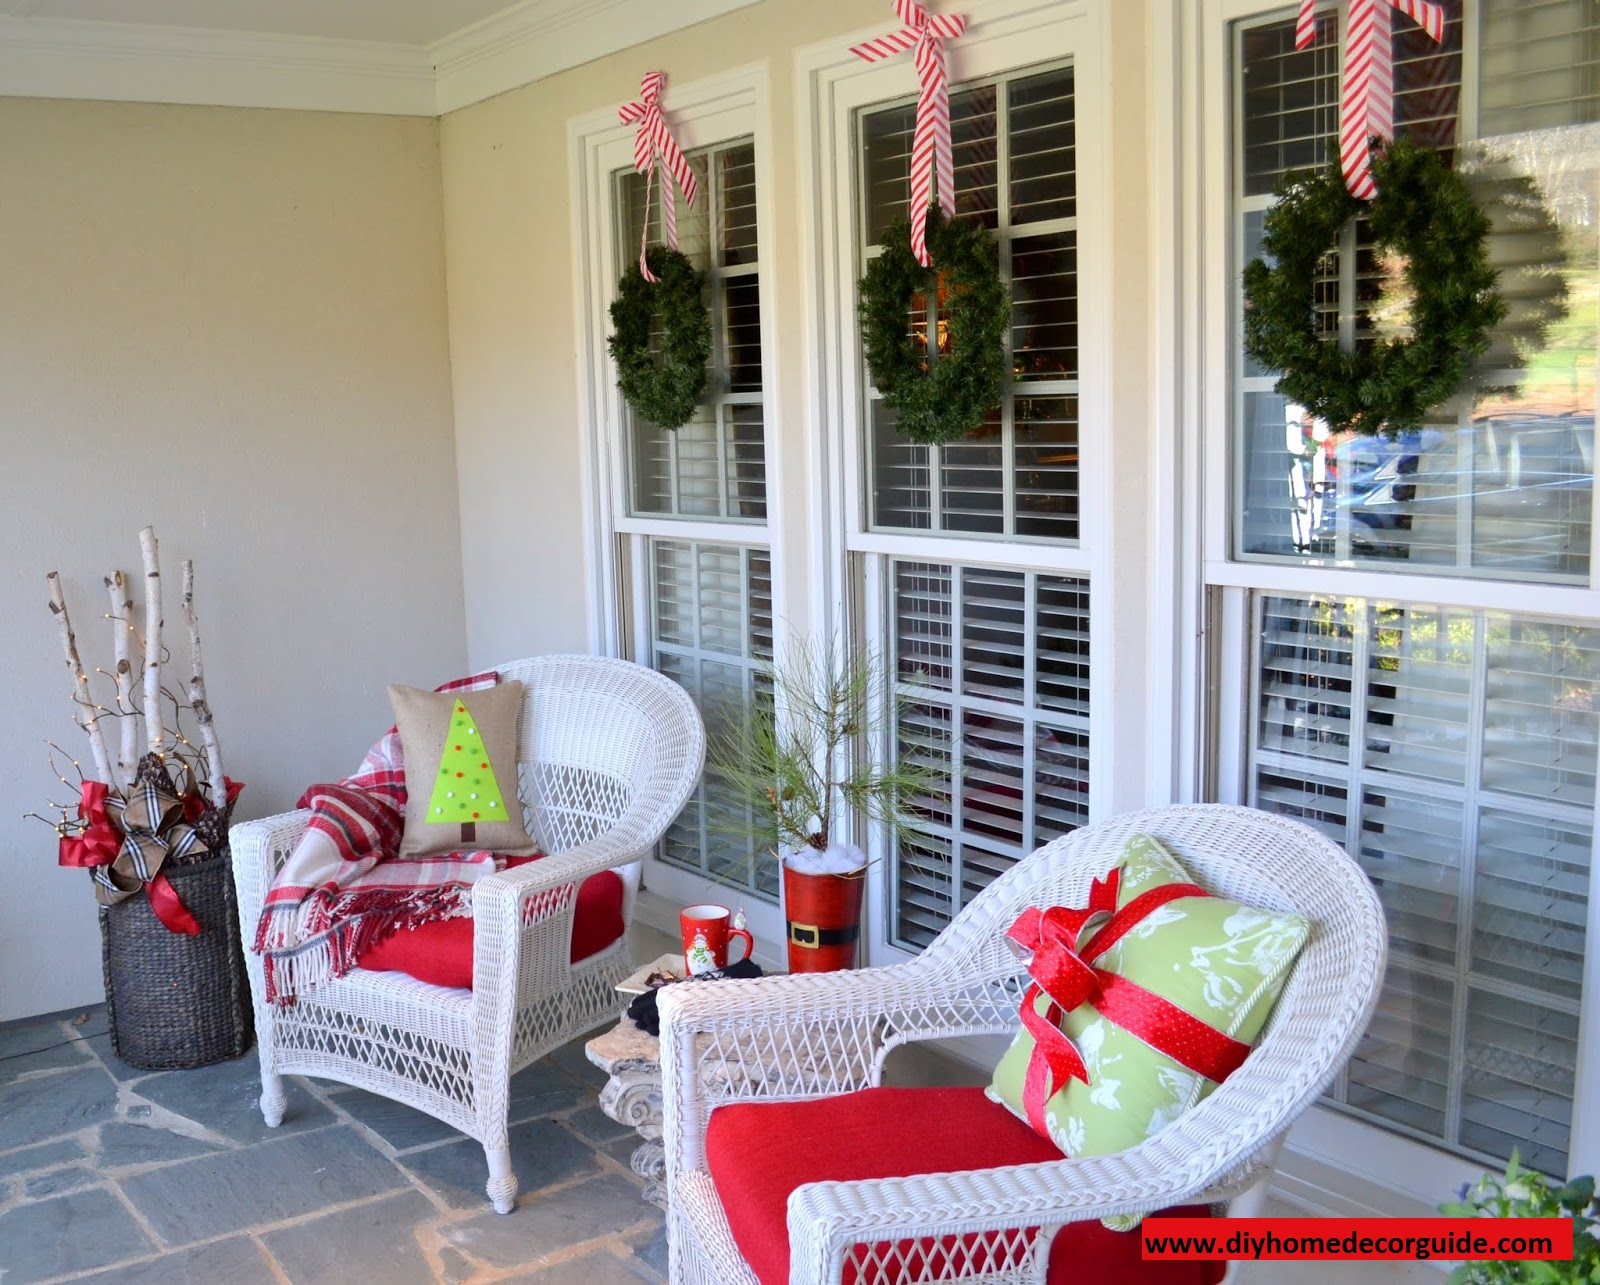 20 diy outdoor christmas decorations ideas 2014 for Easy front porch christmas decorations